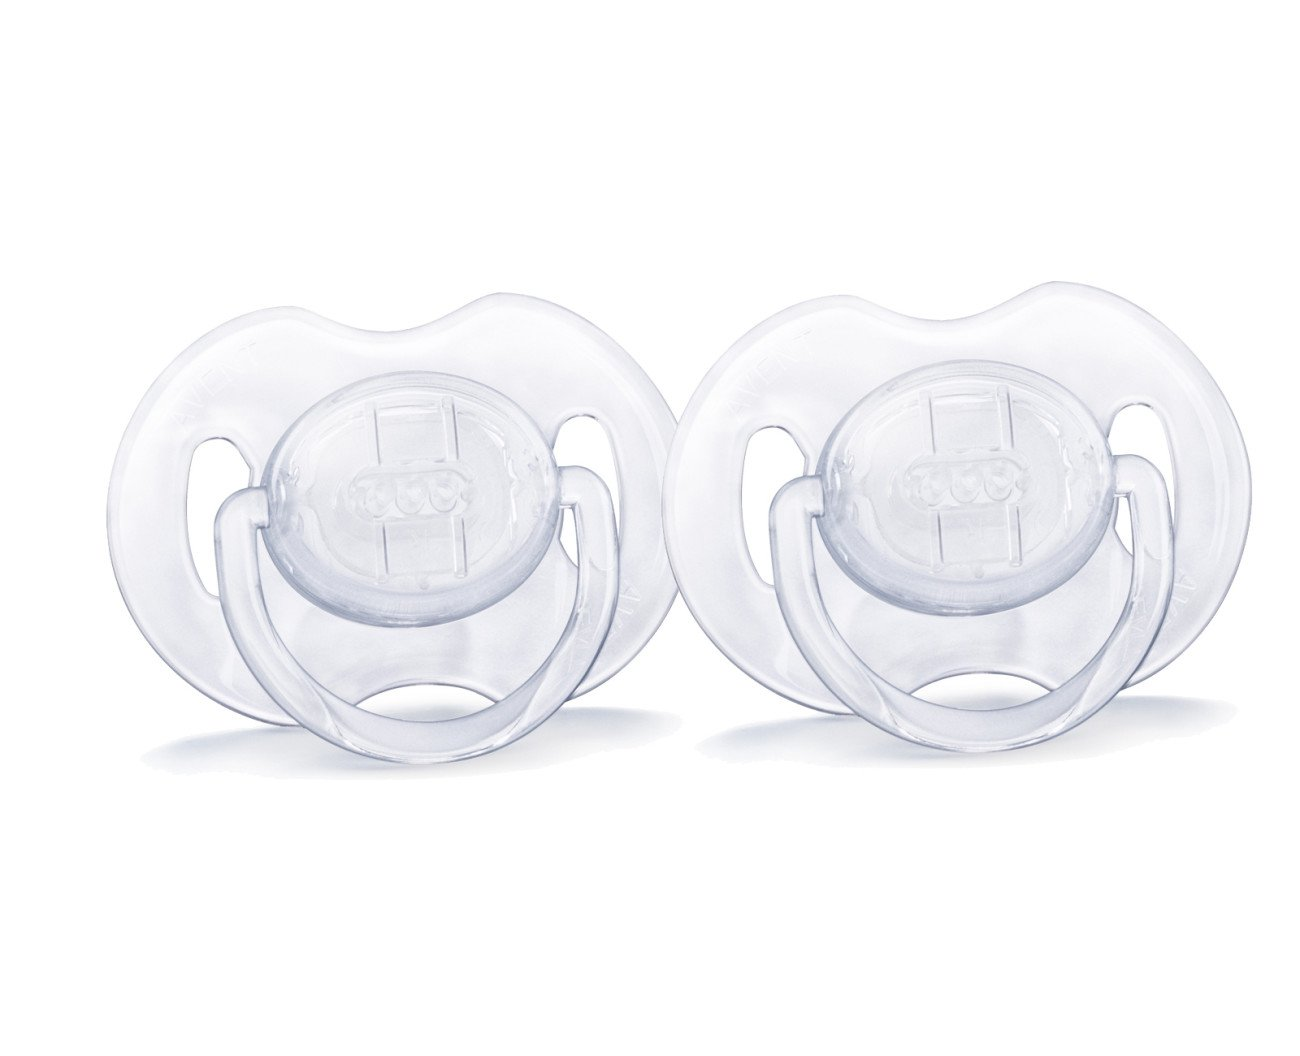 Philips AVENT Translucent Orthodontic Infant Pacifier, Clear, 0-6 Months, 2 Count SCF170/17